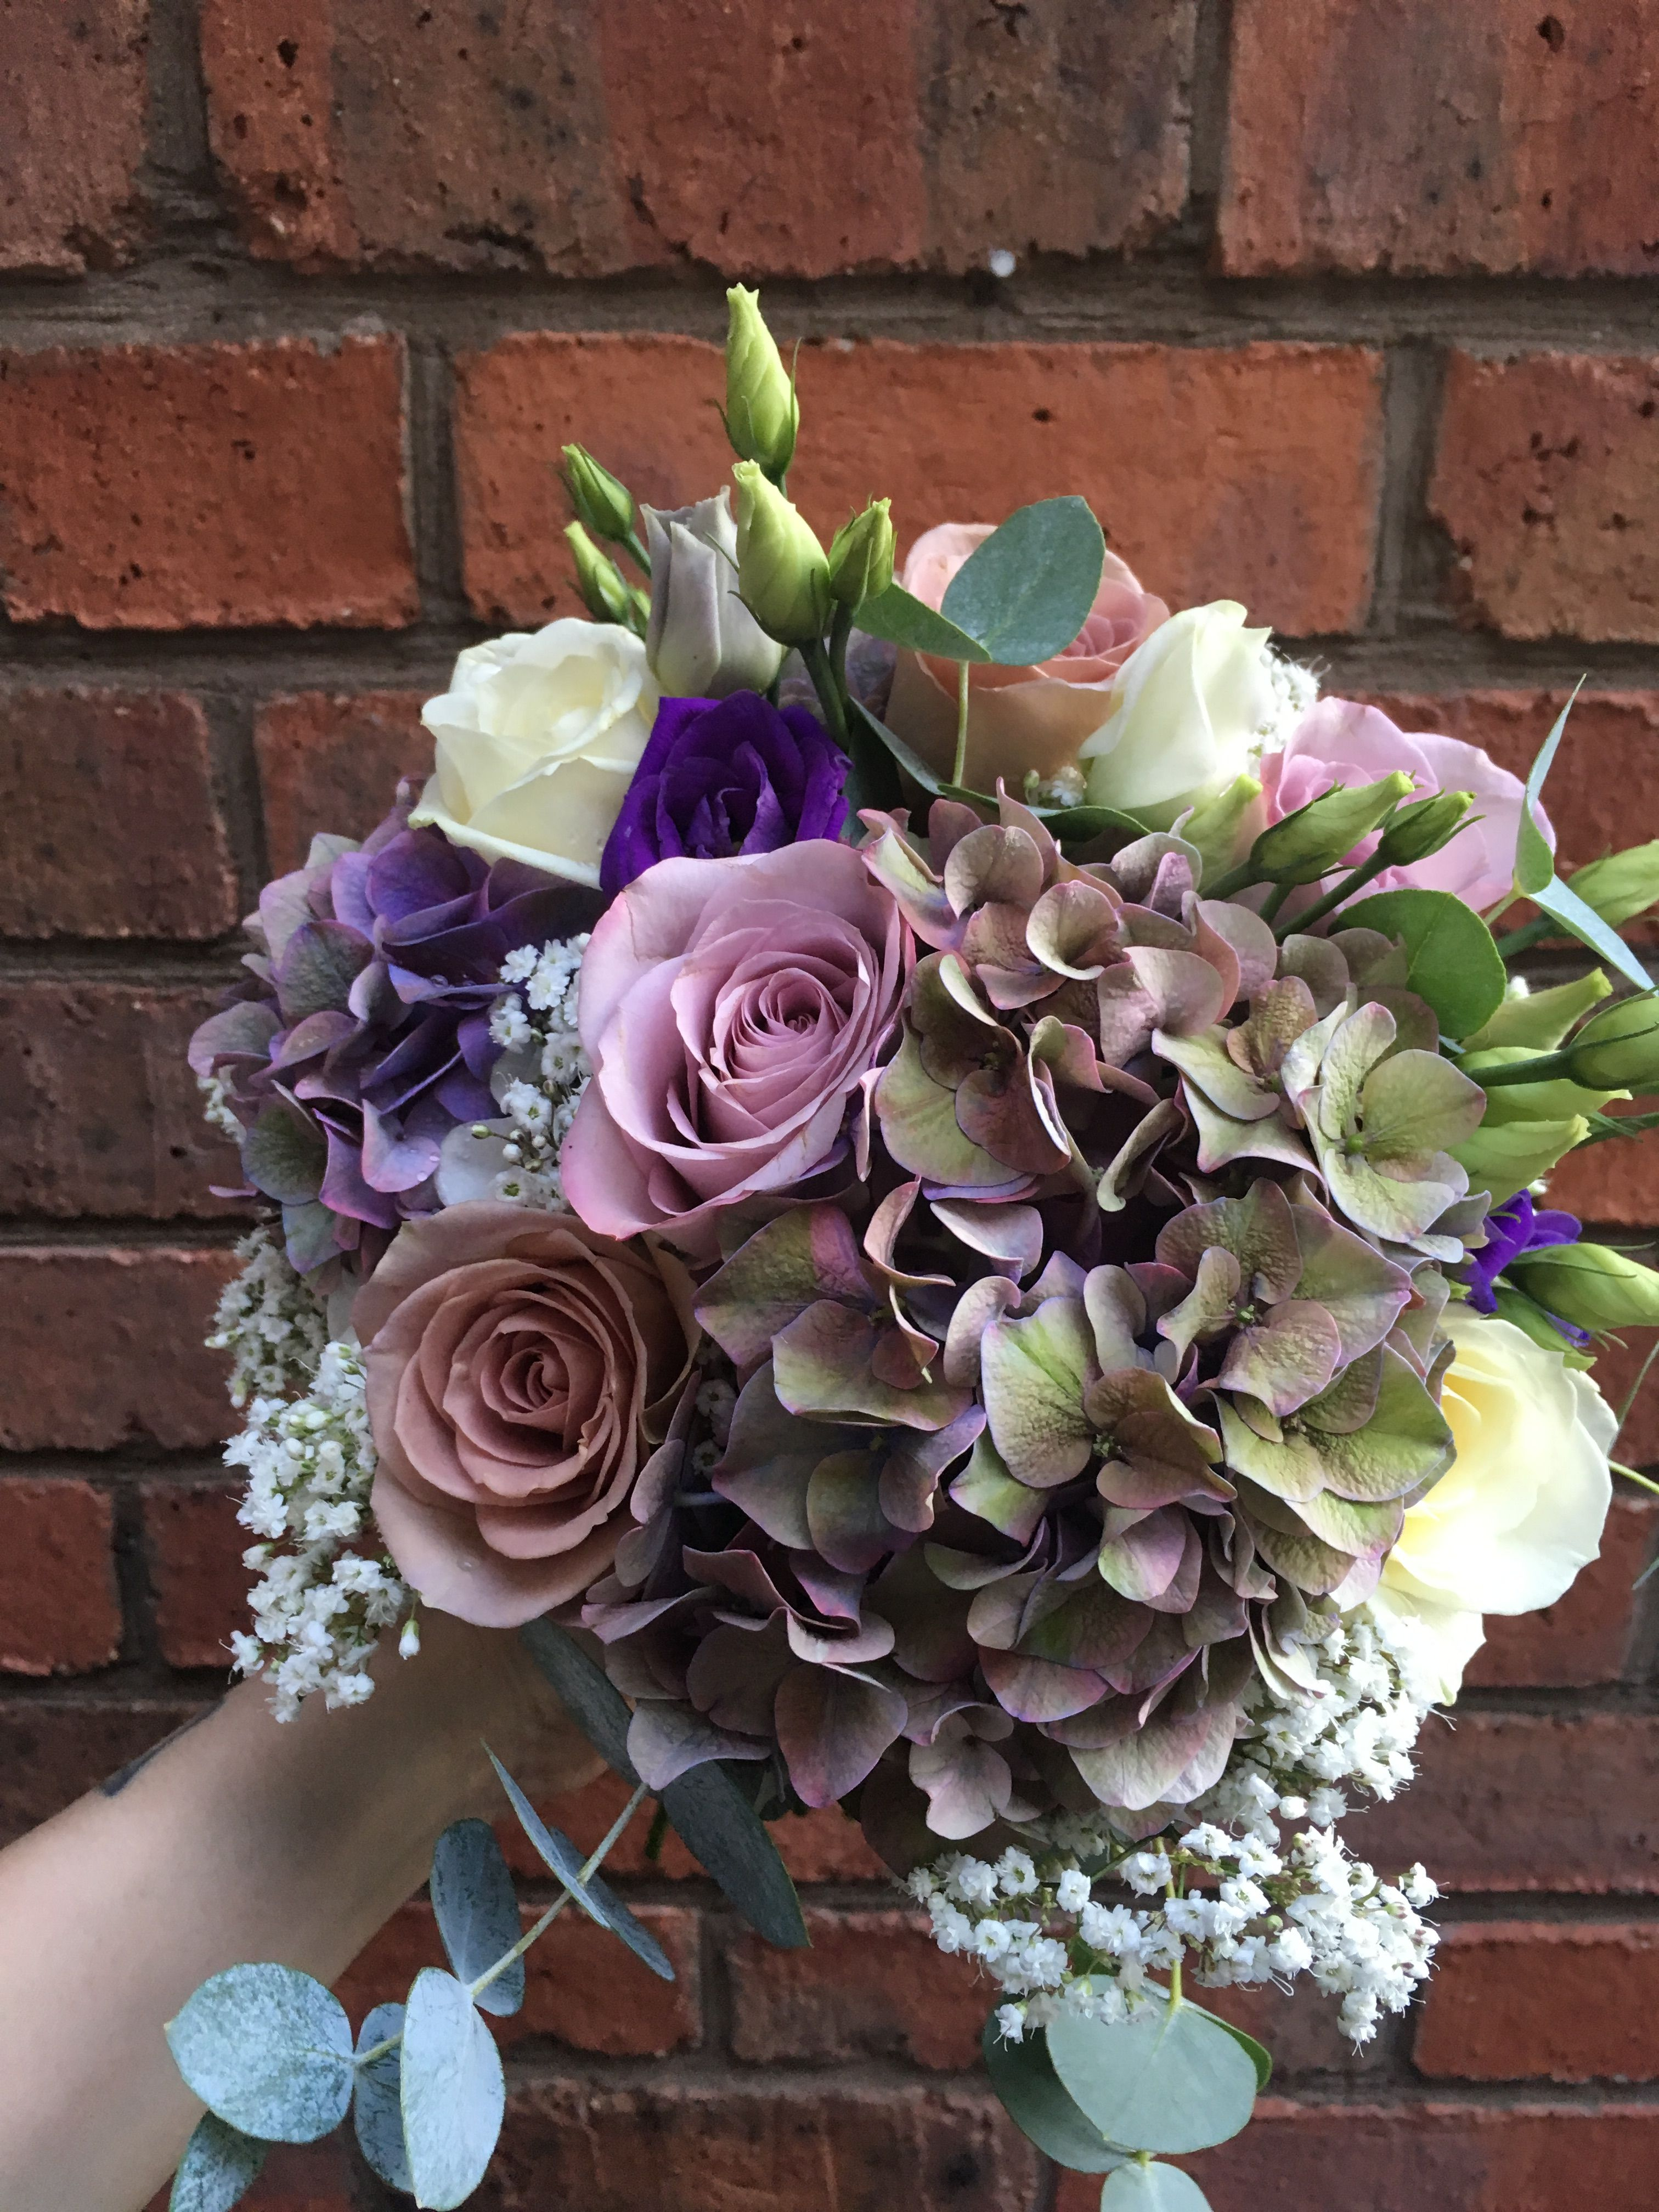 Bridal Bouquet Bridal Flowers Wedding Flowers Ivory And Muted